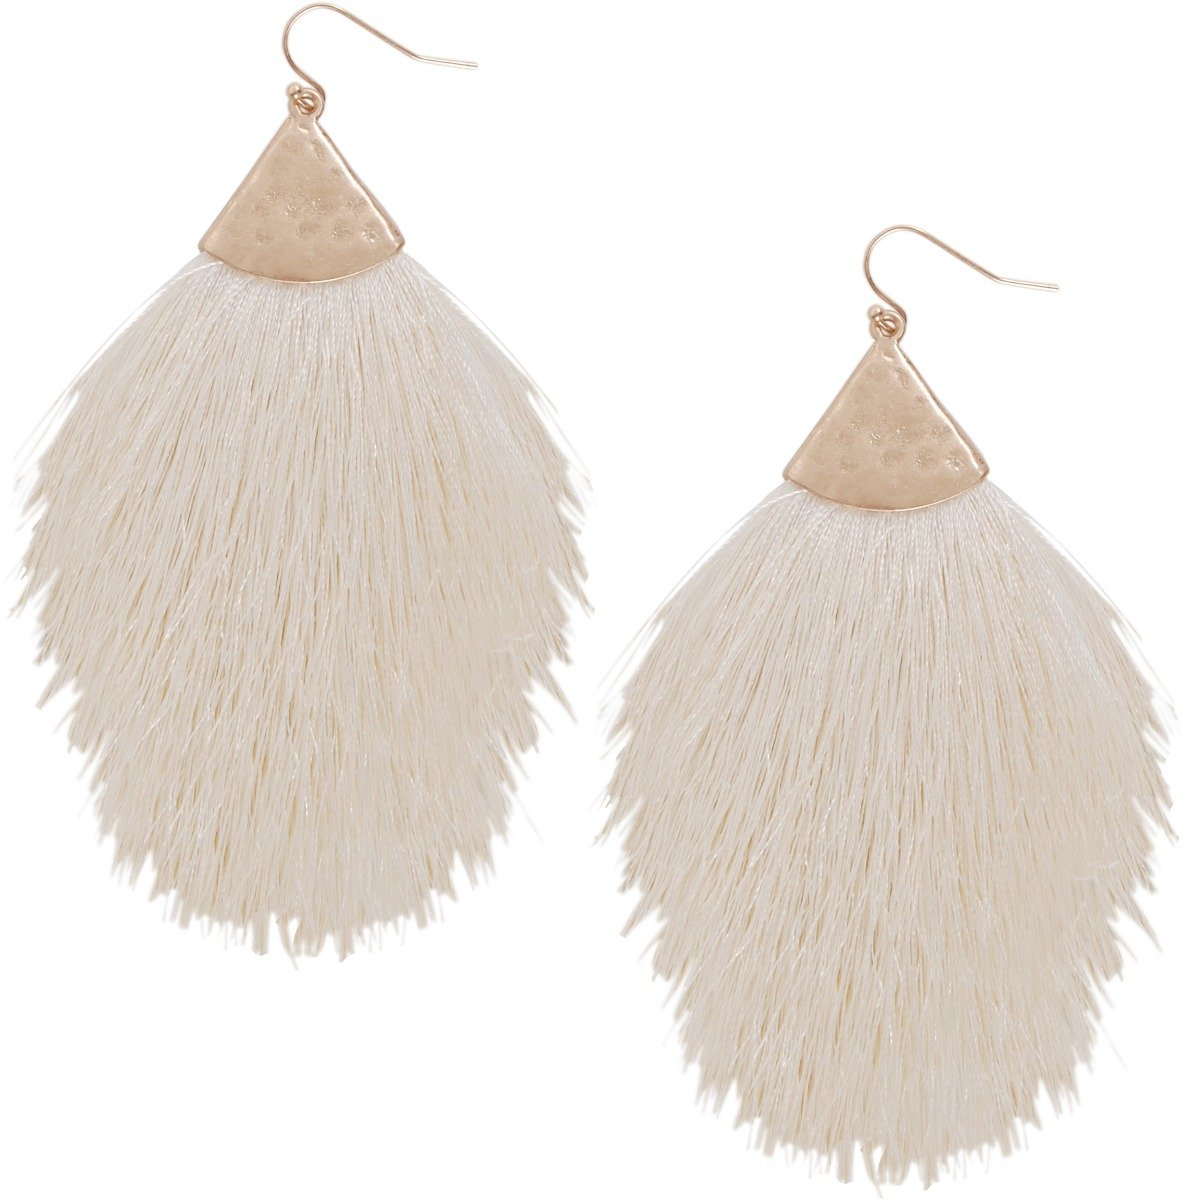 Humble Chic Fringe Tassel Statement Dangle Earrings - Lightweight Long Feather Drops, Off White - Fringe, Ivory-Colored, Cream, Gold-Tone